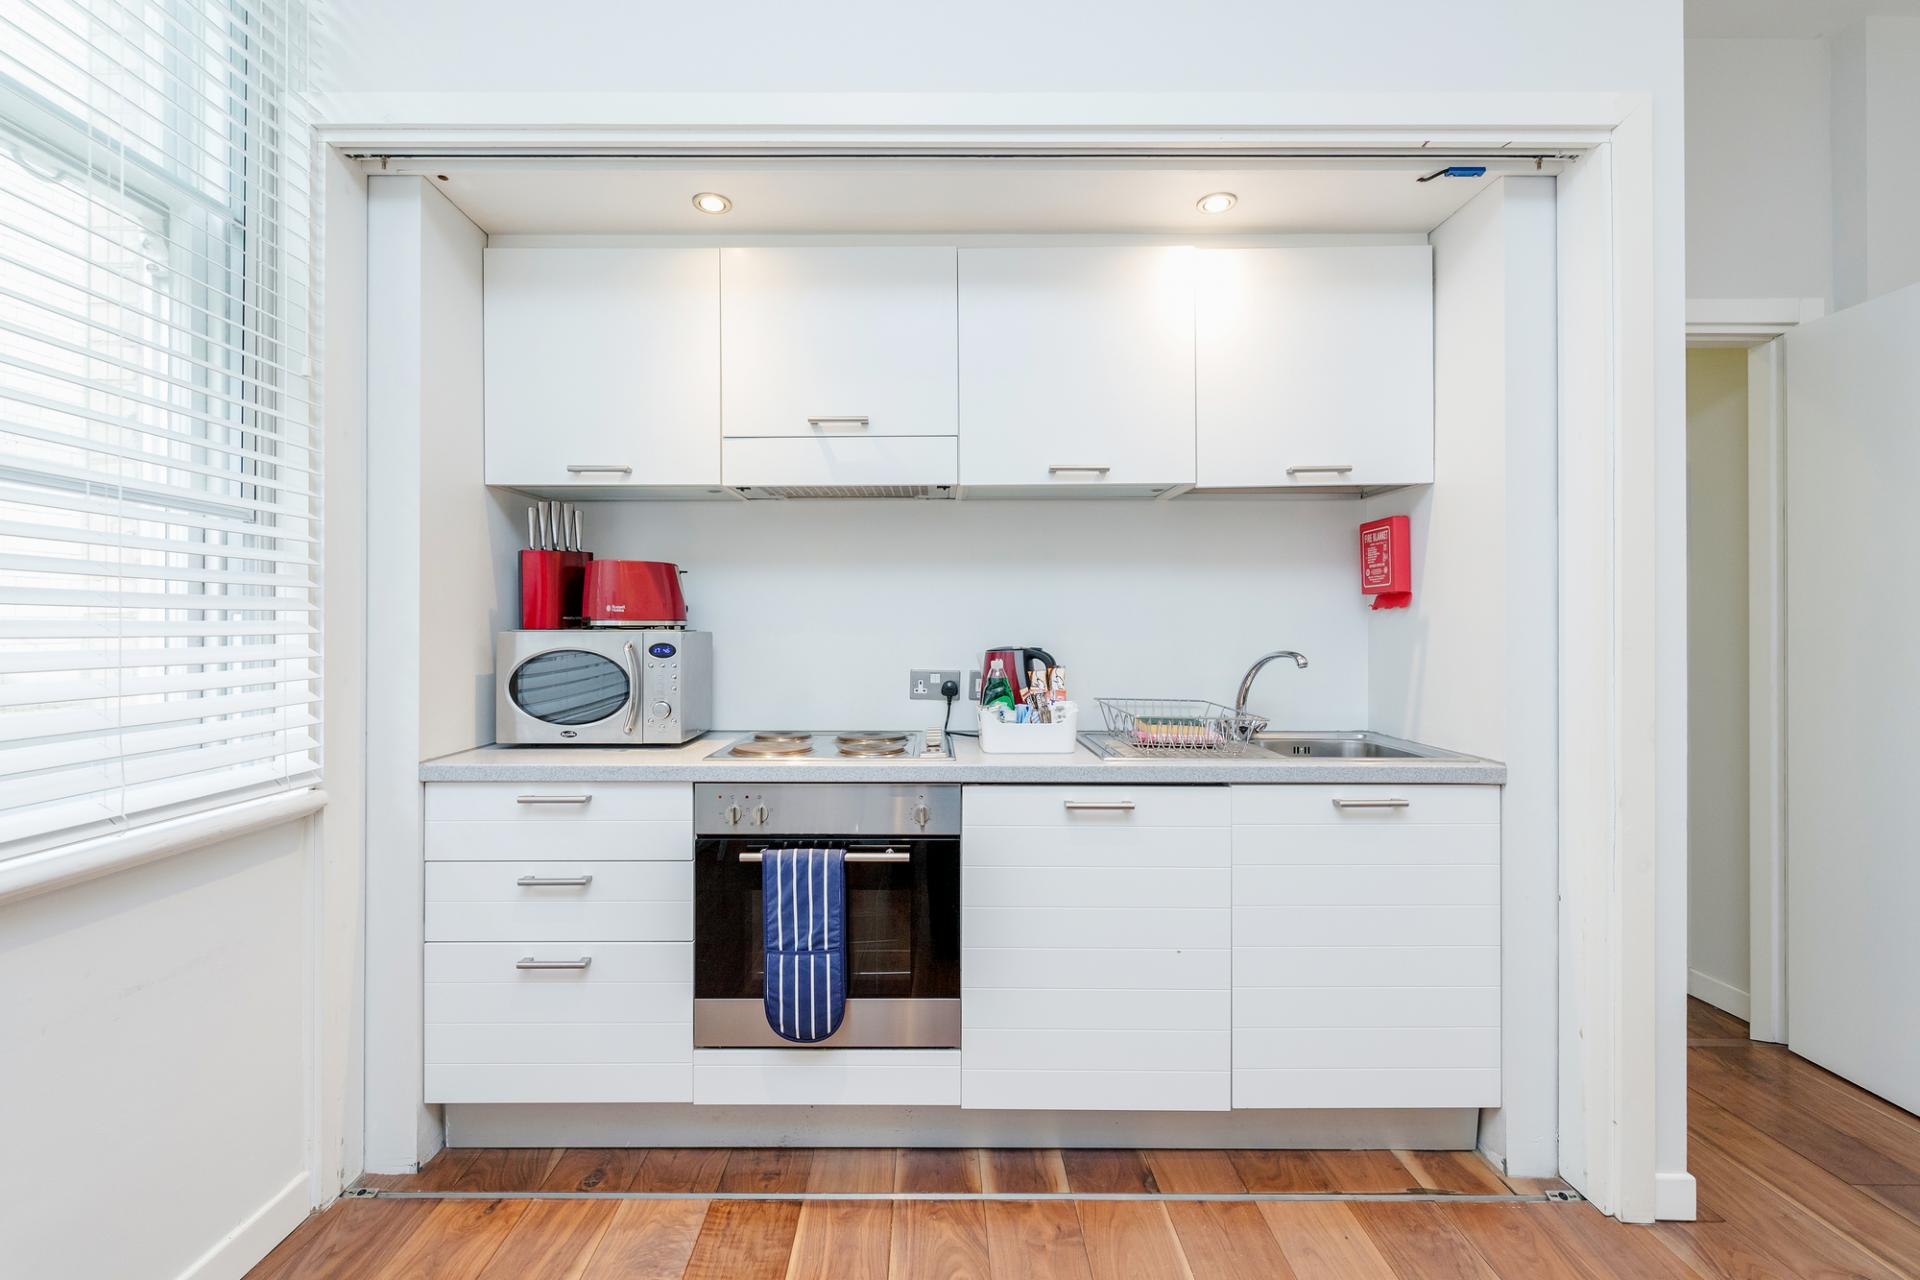 Kitchen at Sterling House Apartments, Holborn, London - Citybase Apartments